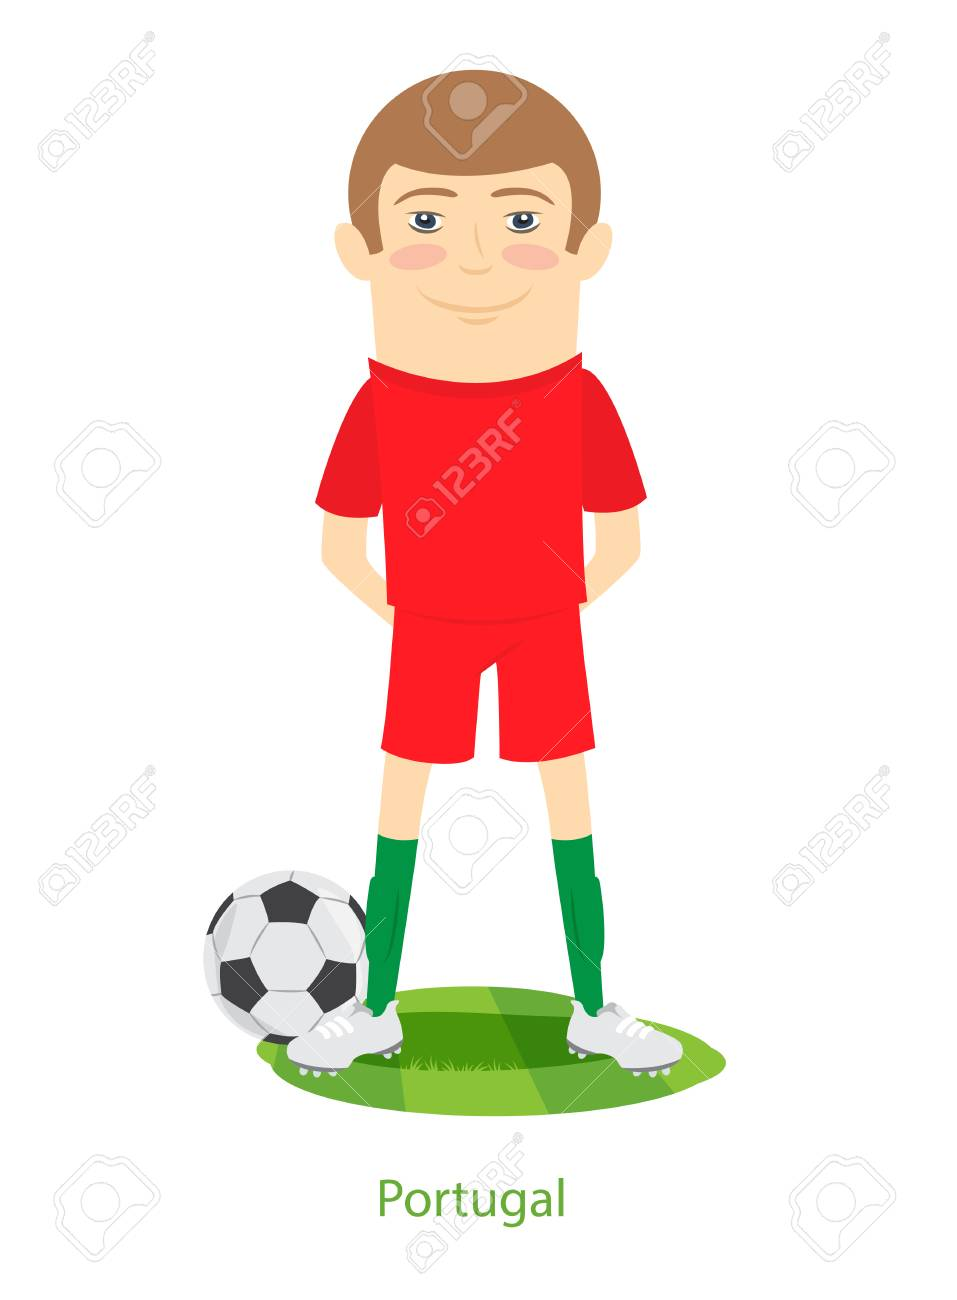 962cca423 Vector Illustration. 2017 Confederations Cup Portugal team s uniform. Set  of Funny football soccer player character standing on